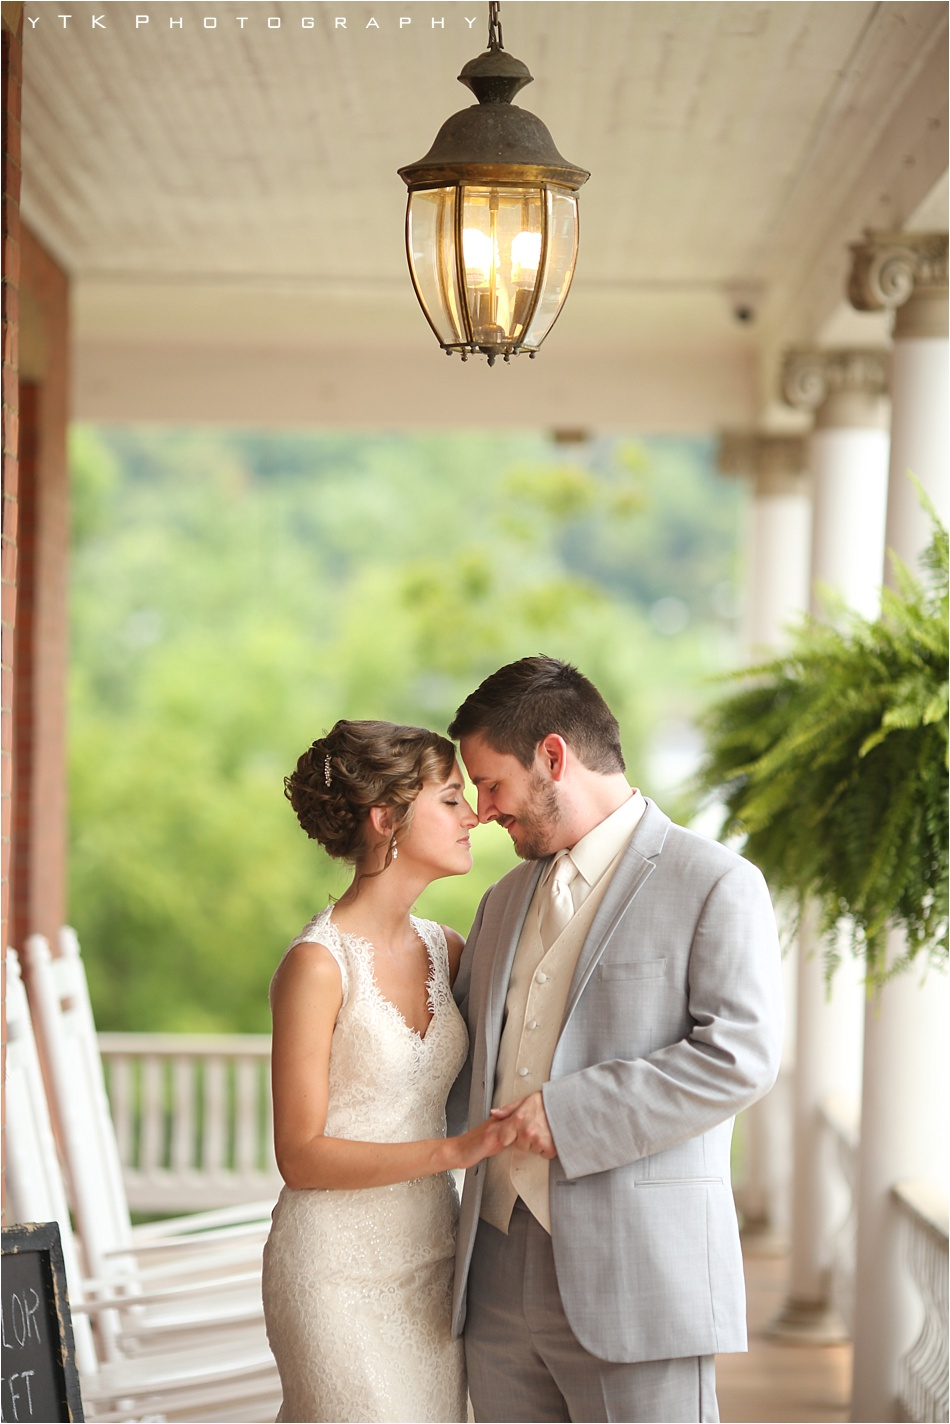 WV_Wedding_Photography_YTK023